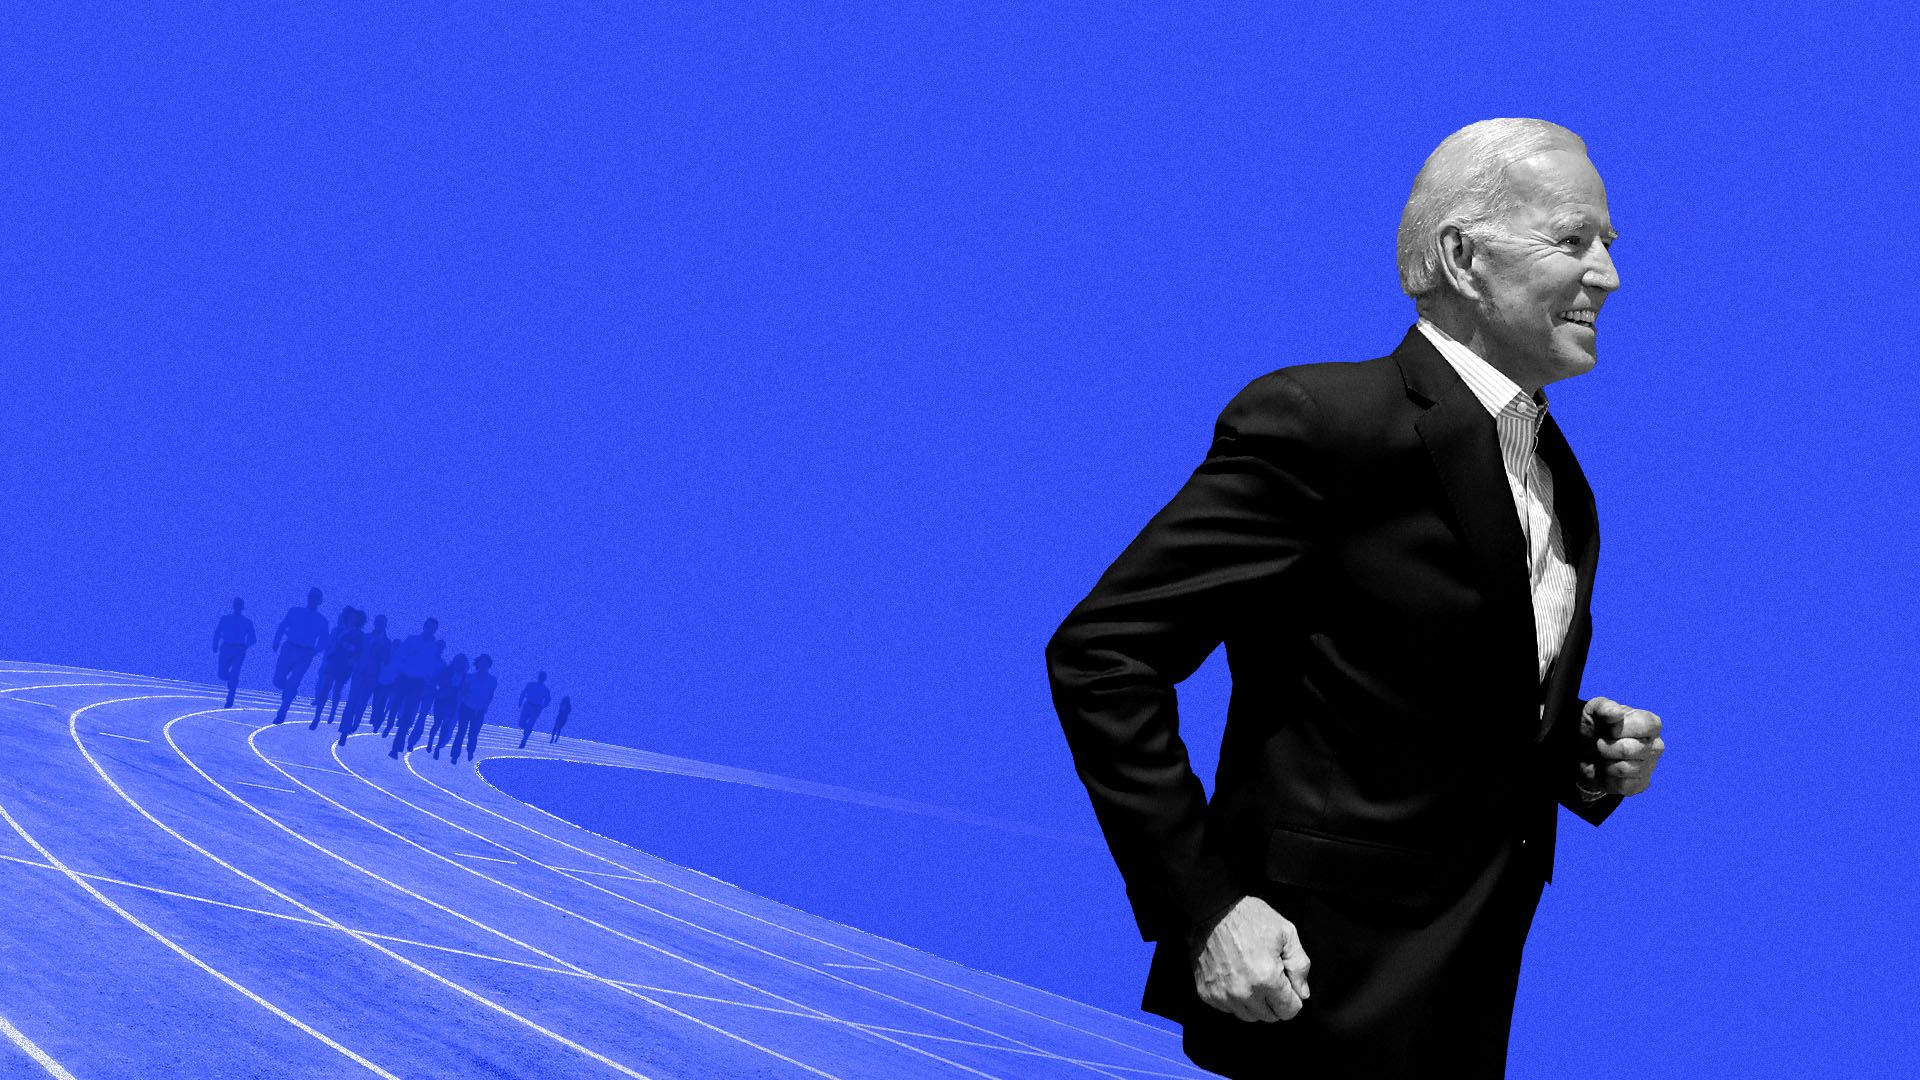 In this illustration, Biden outpaces other runners on a race track.